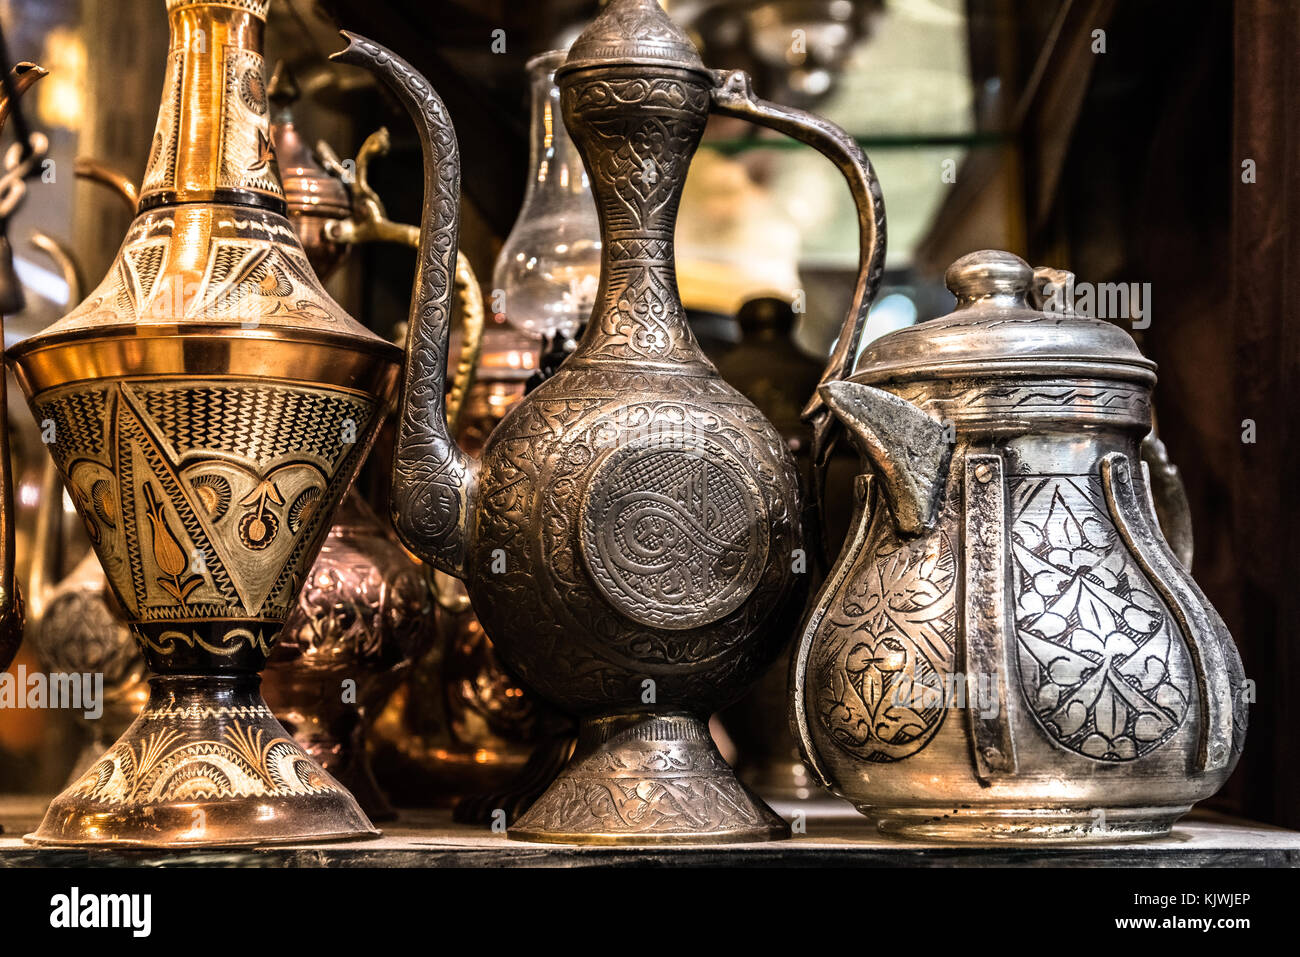 Traditional Turkish copper ewer Souvenirs in Istanbul Grand Bazaar. Stock Photo